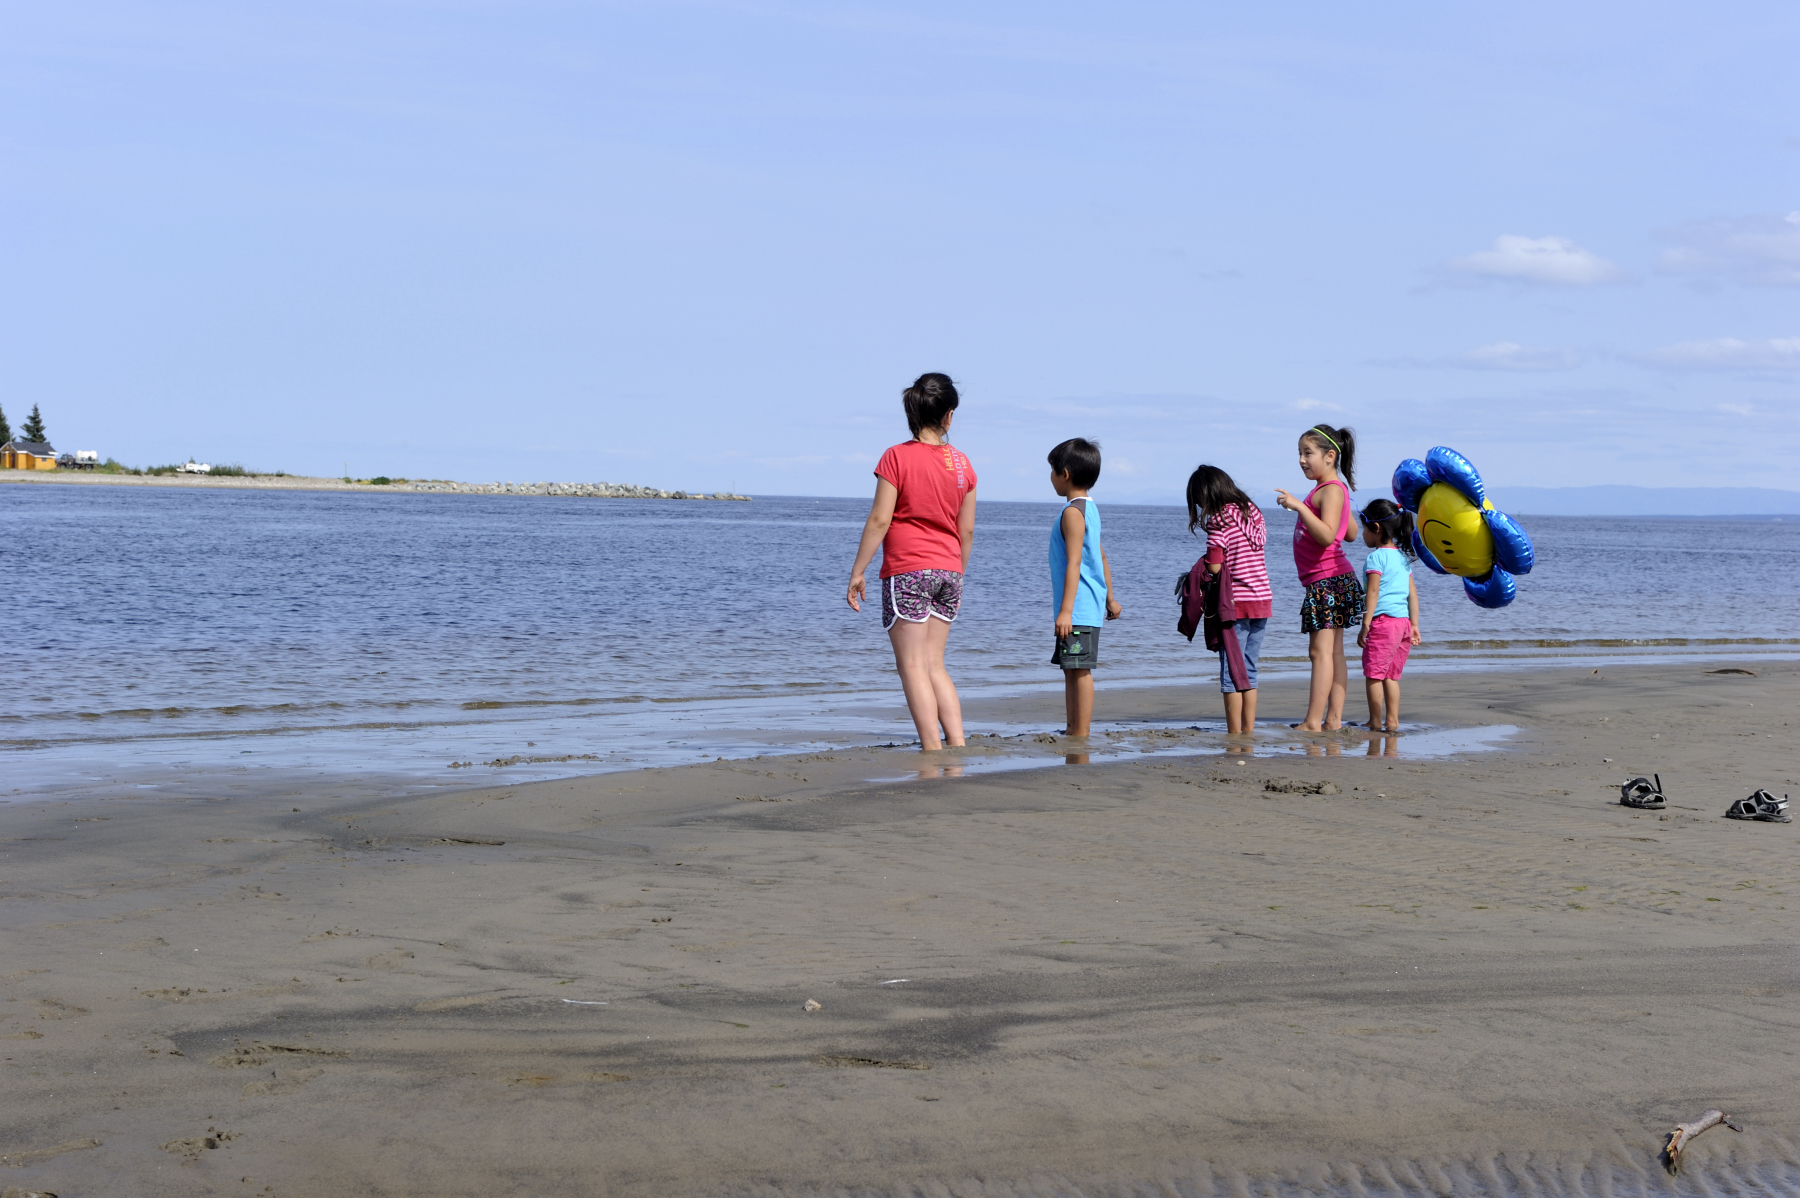 During the Governor General's visit, children of the community were playing on the beach.